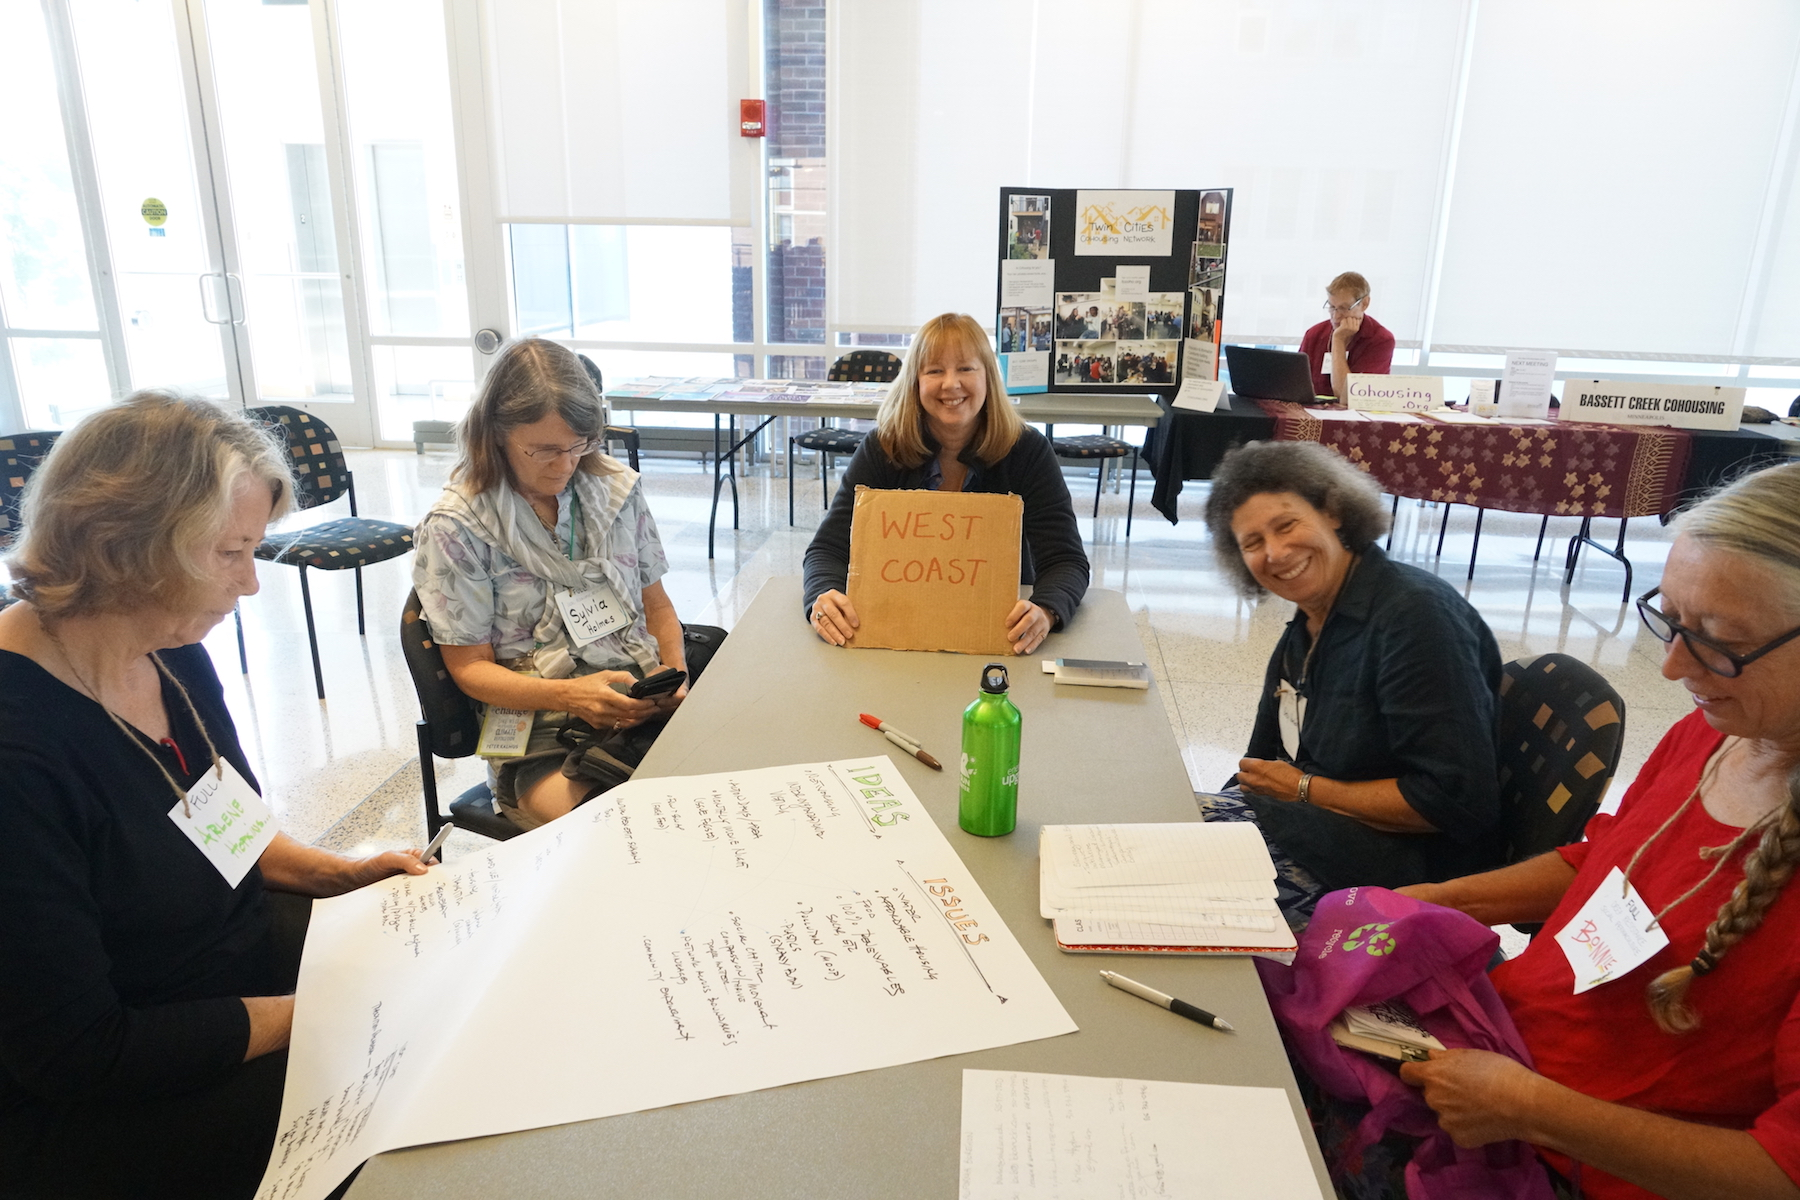 West Coast Transitioners represent and brainstorm ideas during their Sunday morning bioregional breakout. Photo by Teresa Konechne.